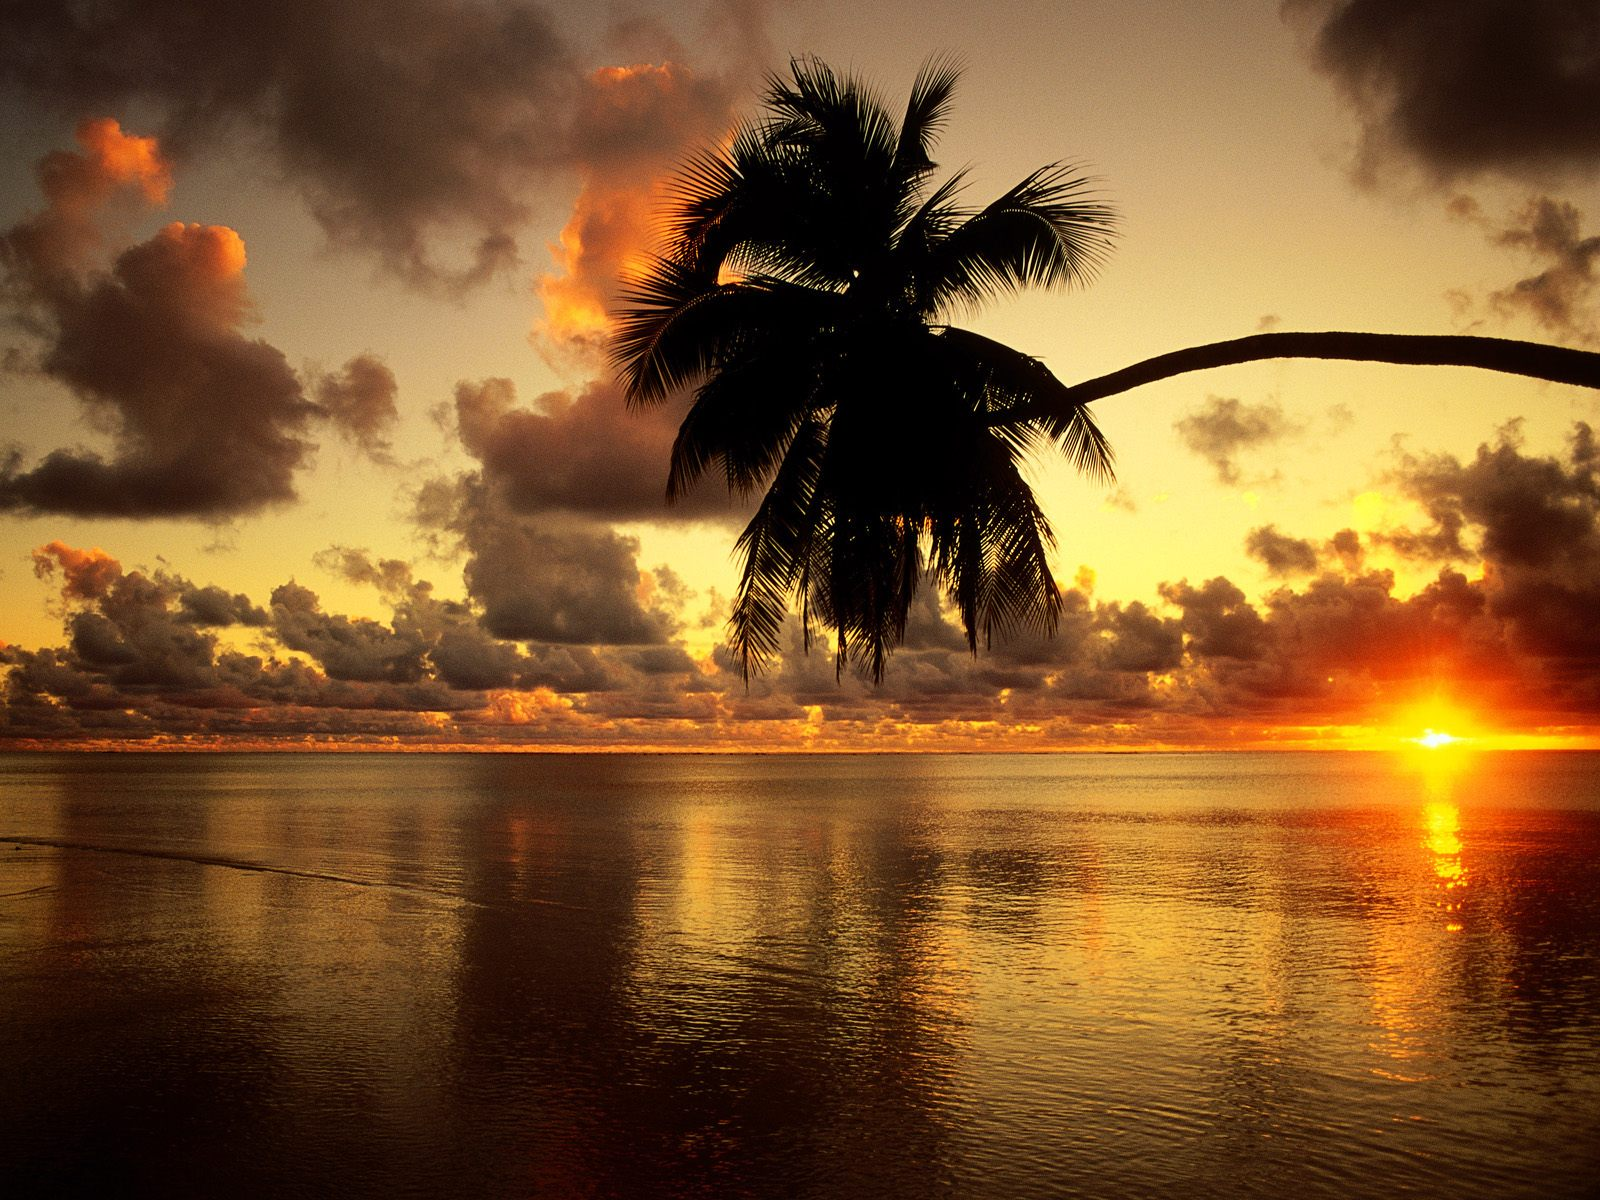 Aitutaki Lagoon at Sunrise, Cook Islands